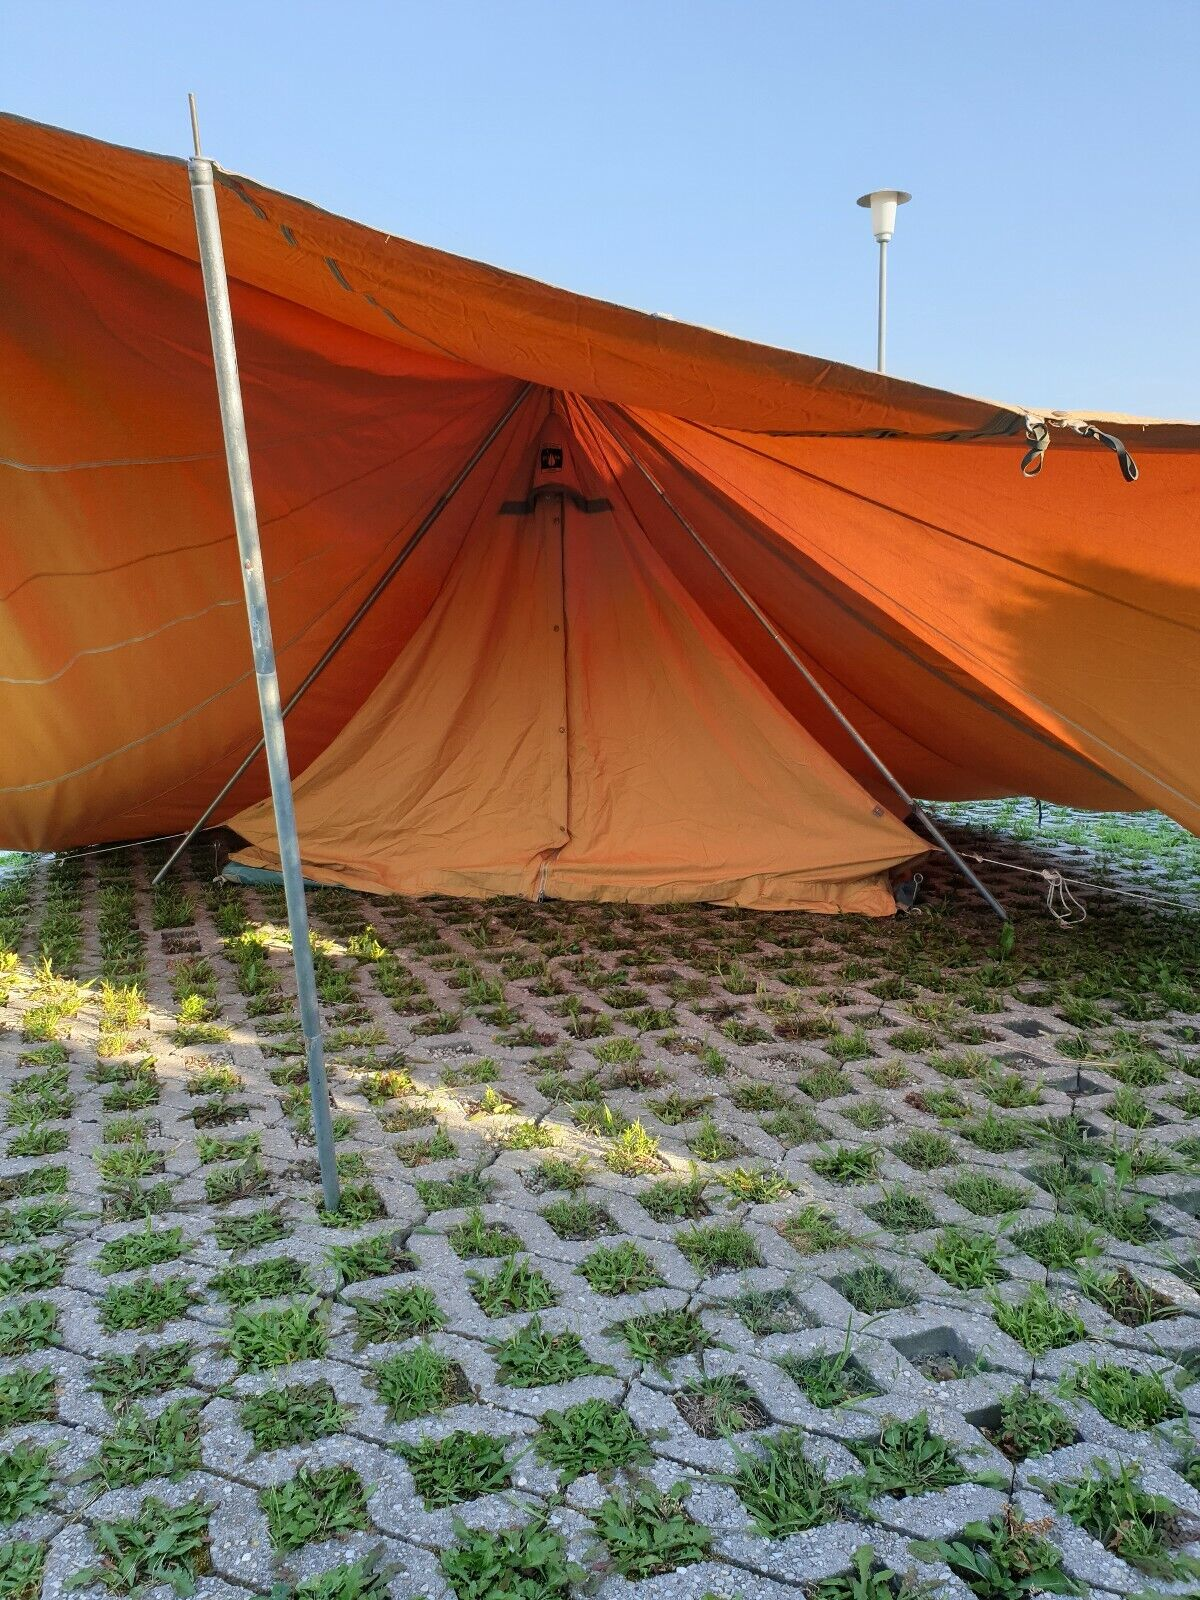 Teepee Camping Tent Tent Retro Vintage heiha Sport Outdoor  Bell Military 70 Dome  all goods are specials